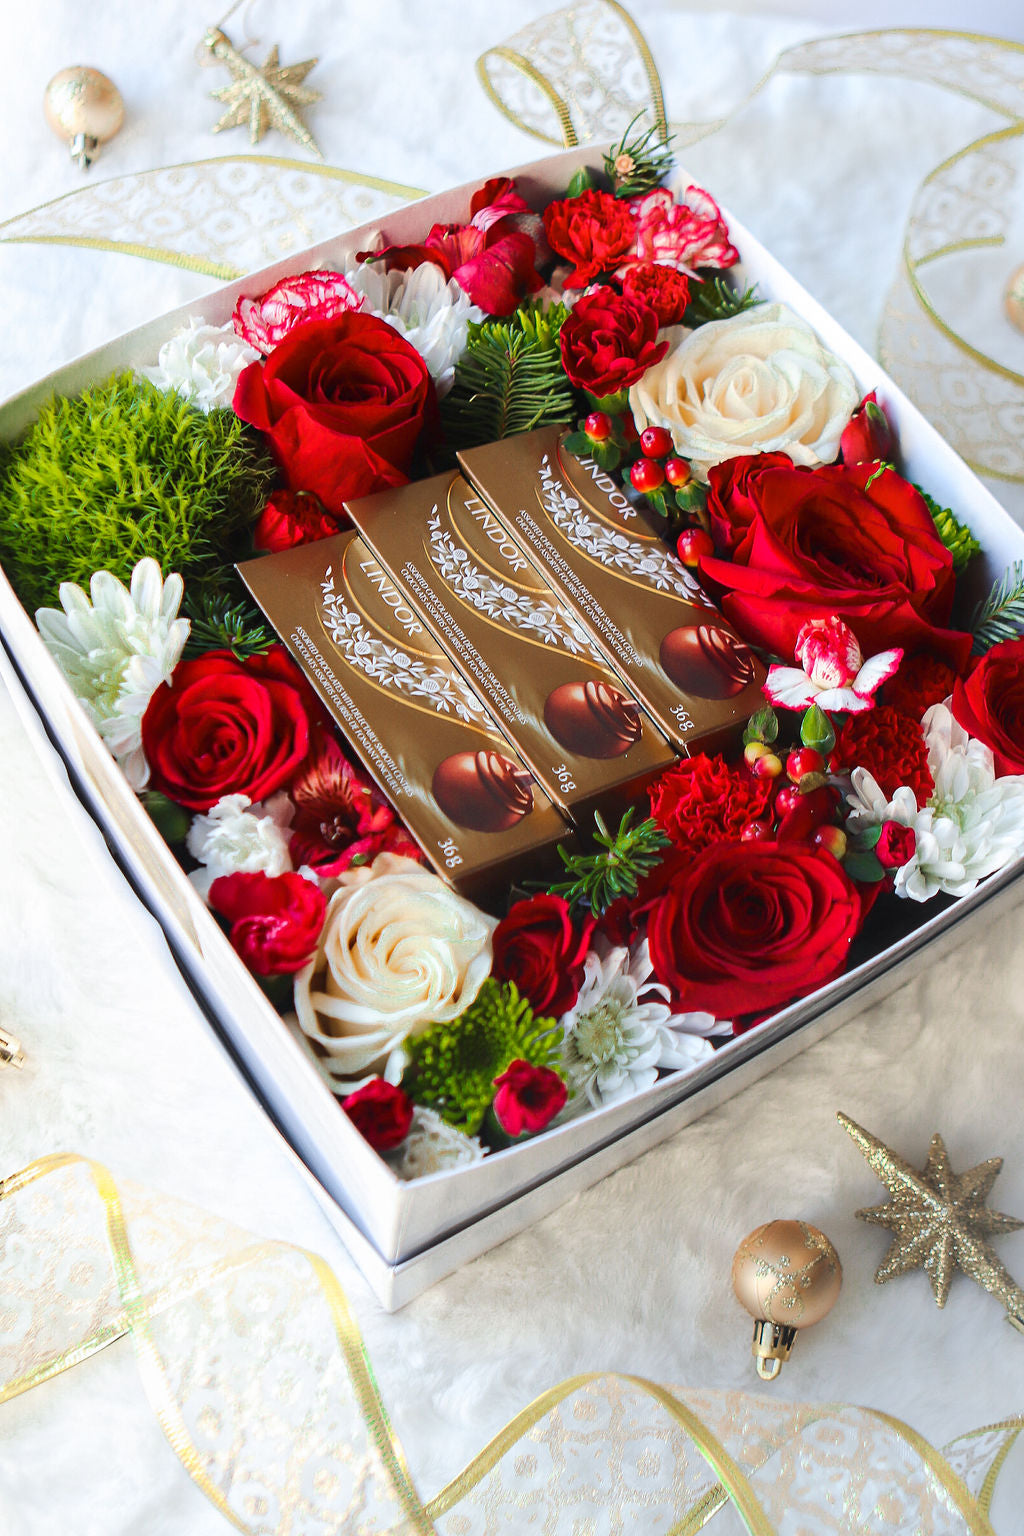 Holiday Lindt Chocolate Box | Luxe Blooms